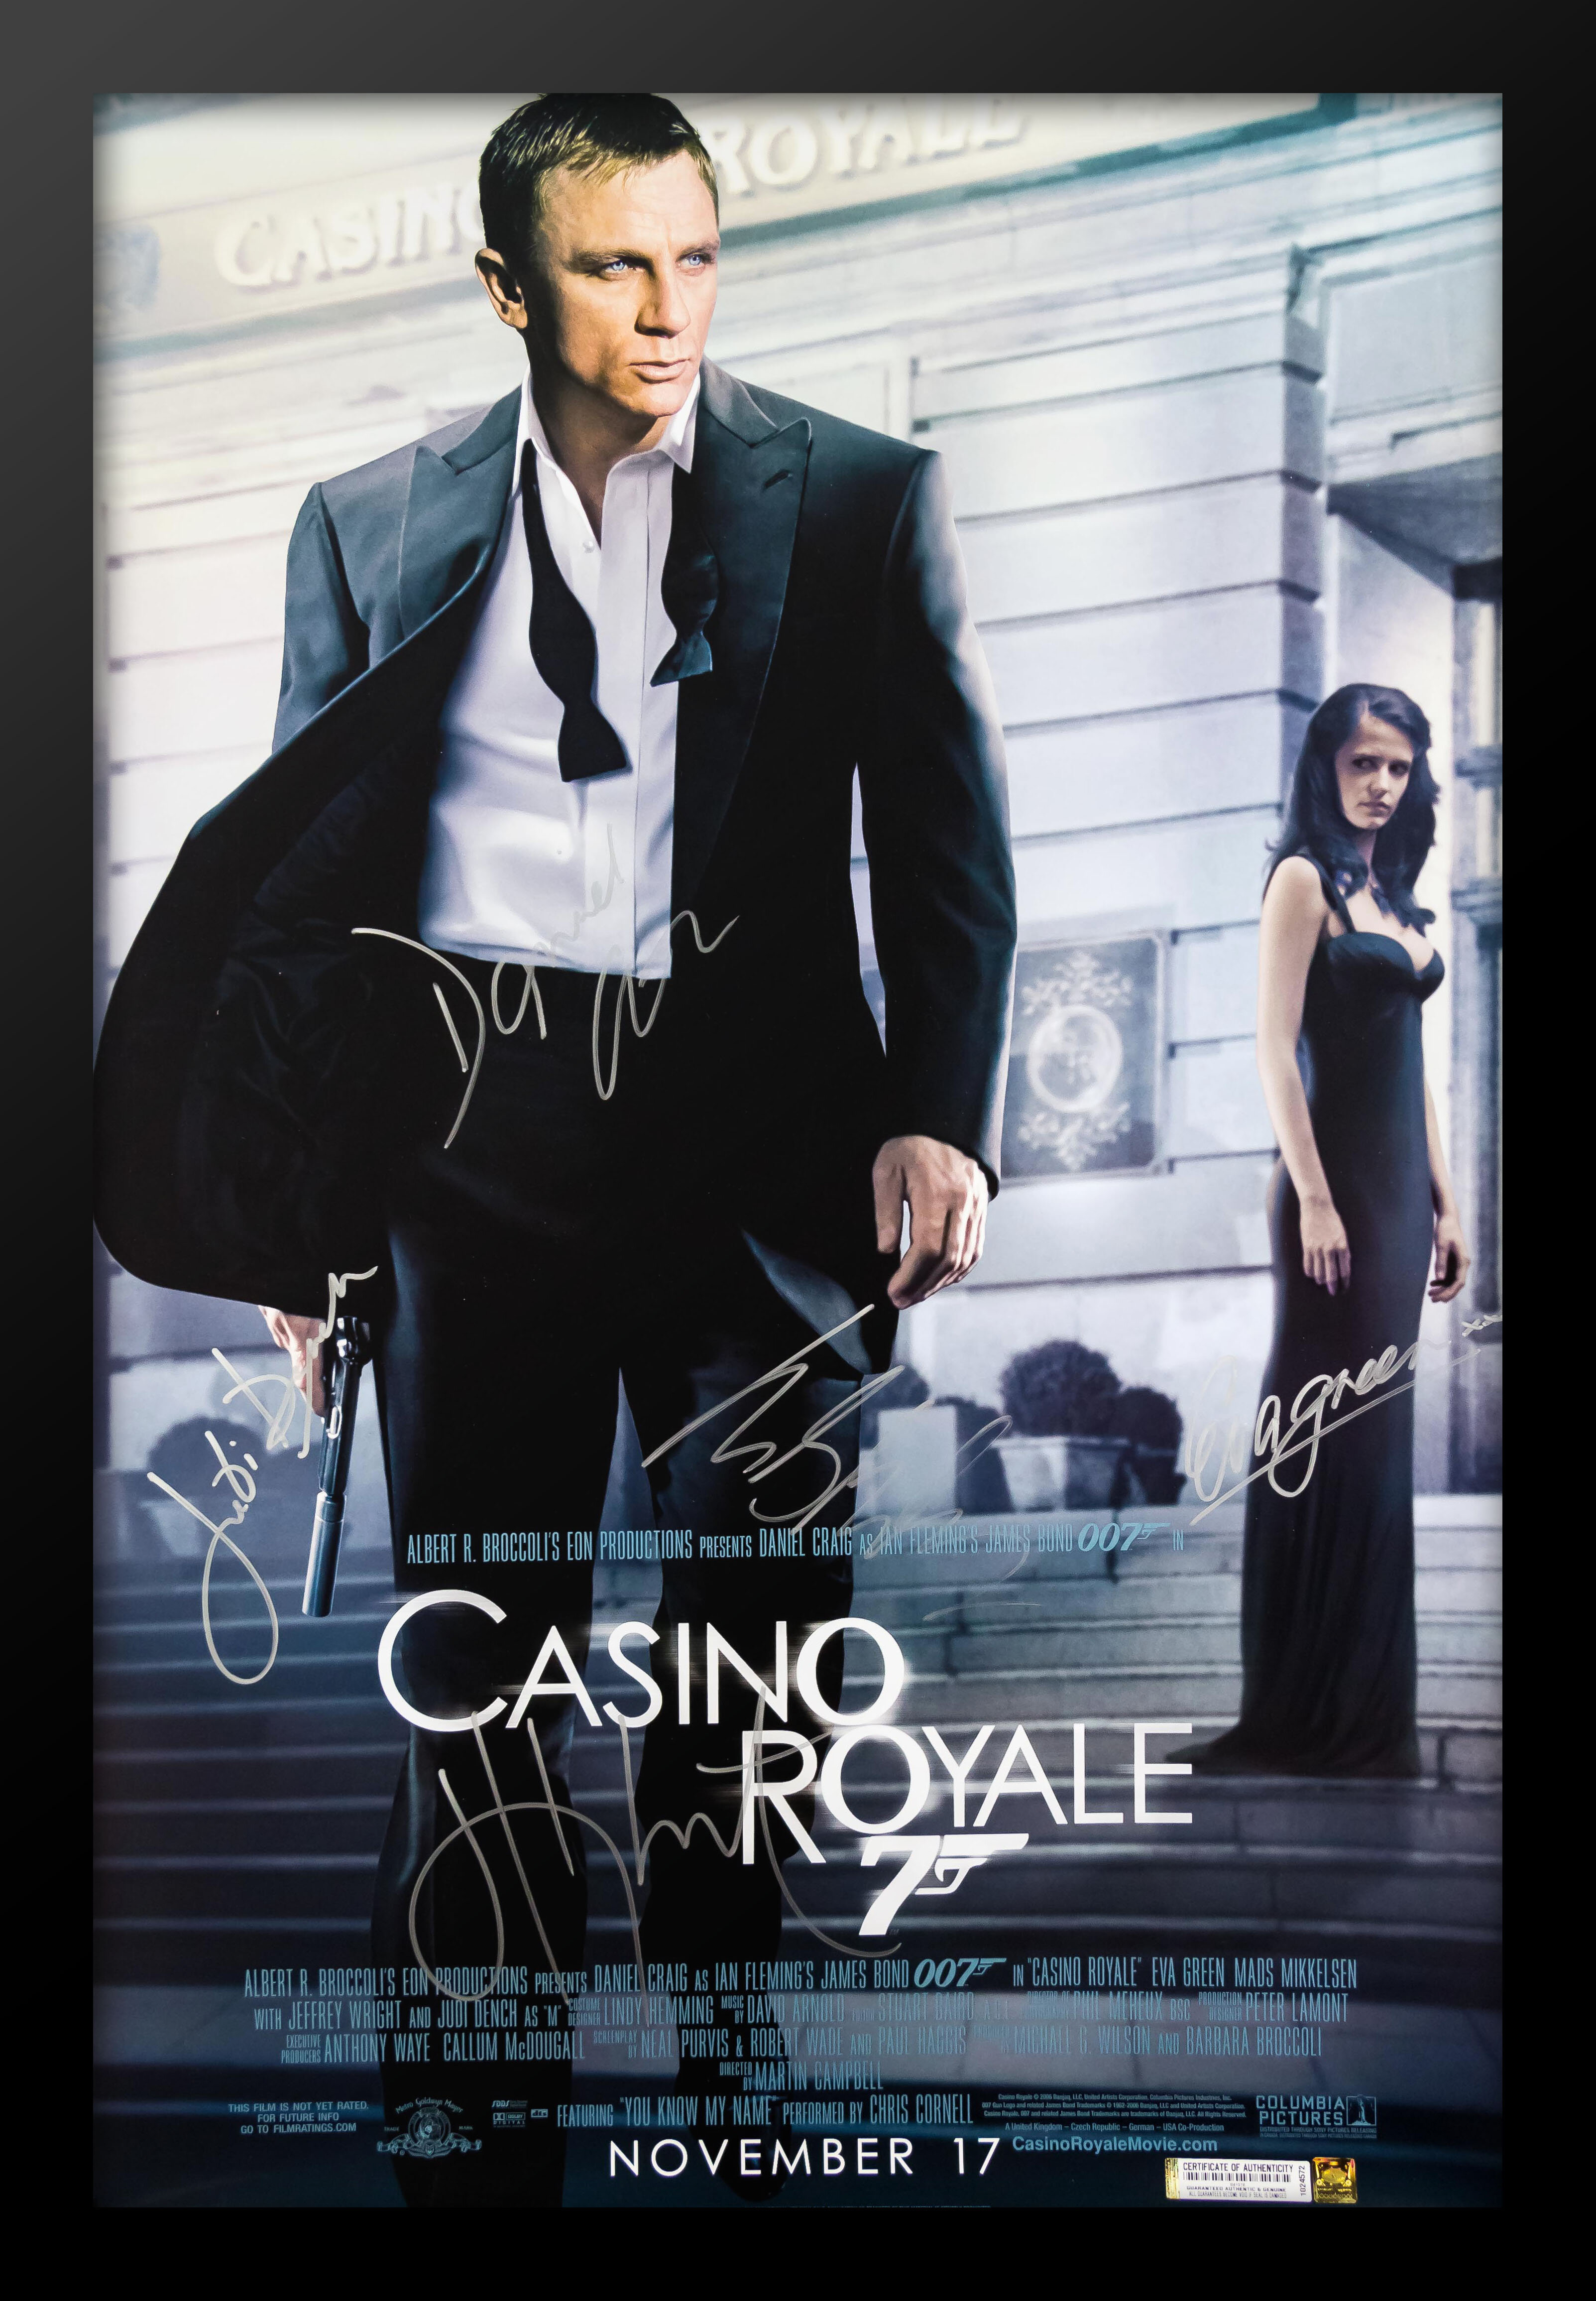 Luxewest James Bond Casino Royale Framed Autographed Movie Poster Wayfair